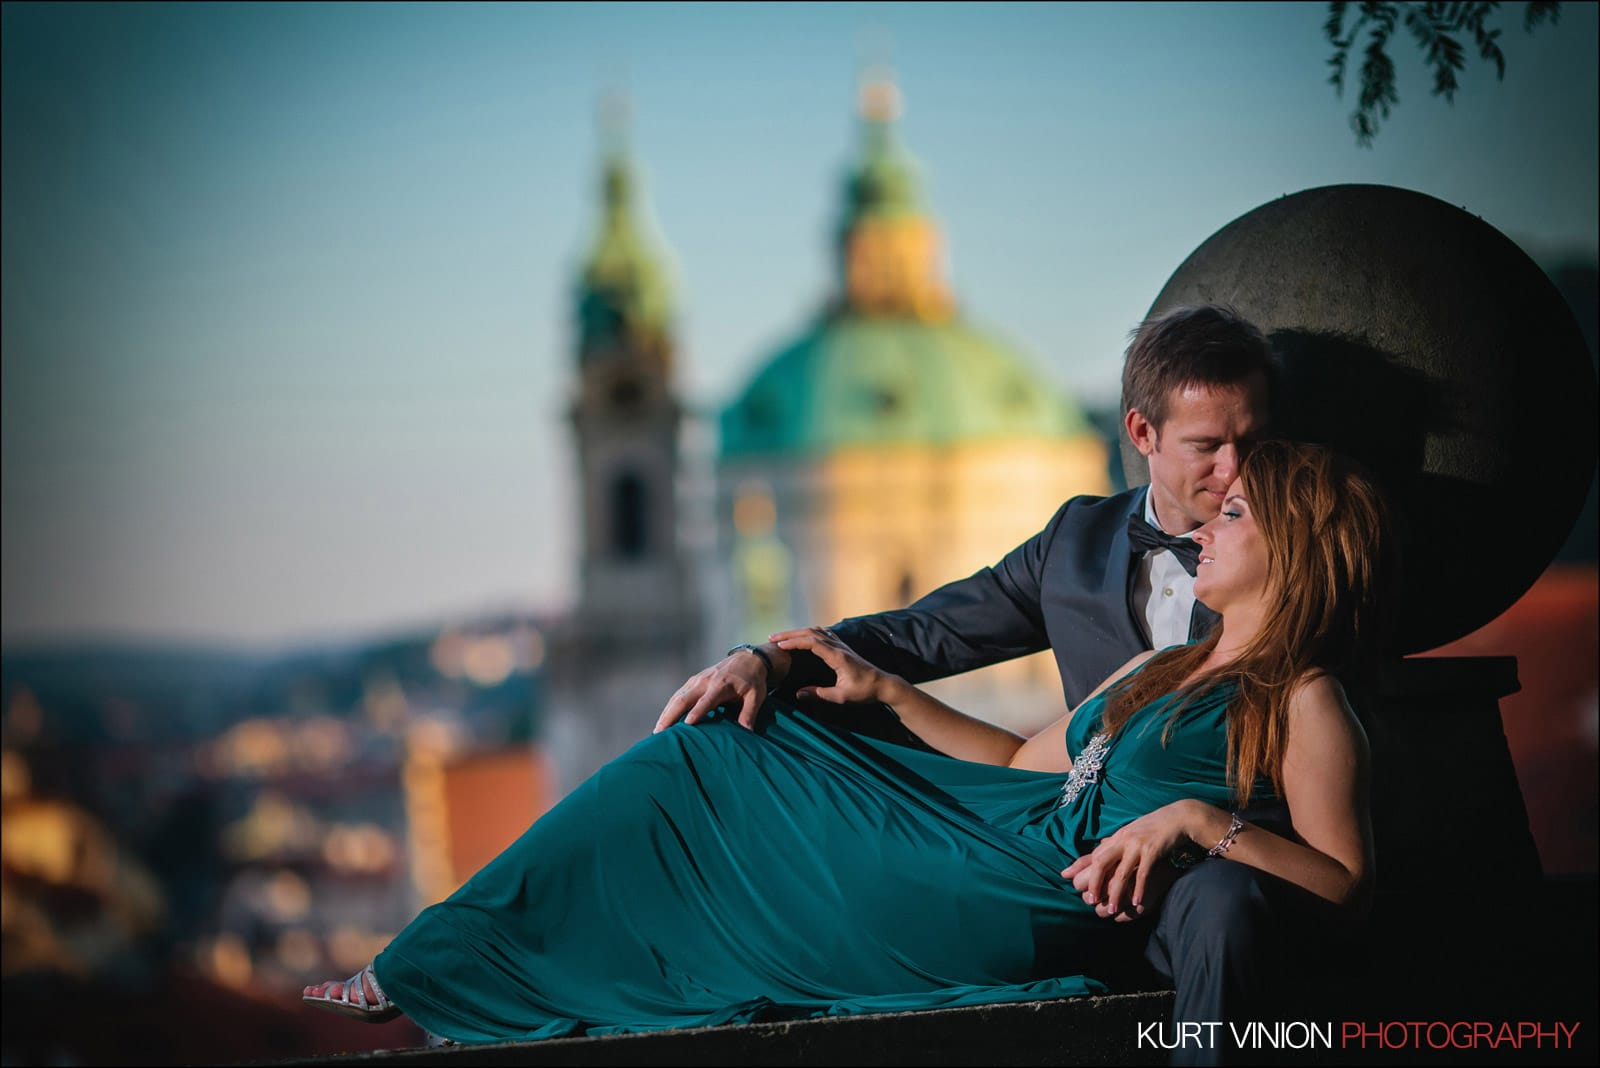 Elopement wedding Prague / Polya & Dirk wedding portraits at Prague Castle